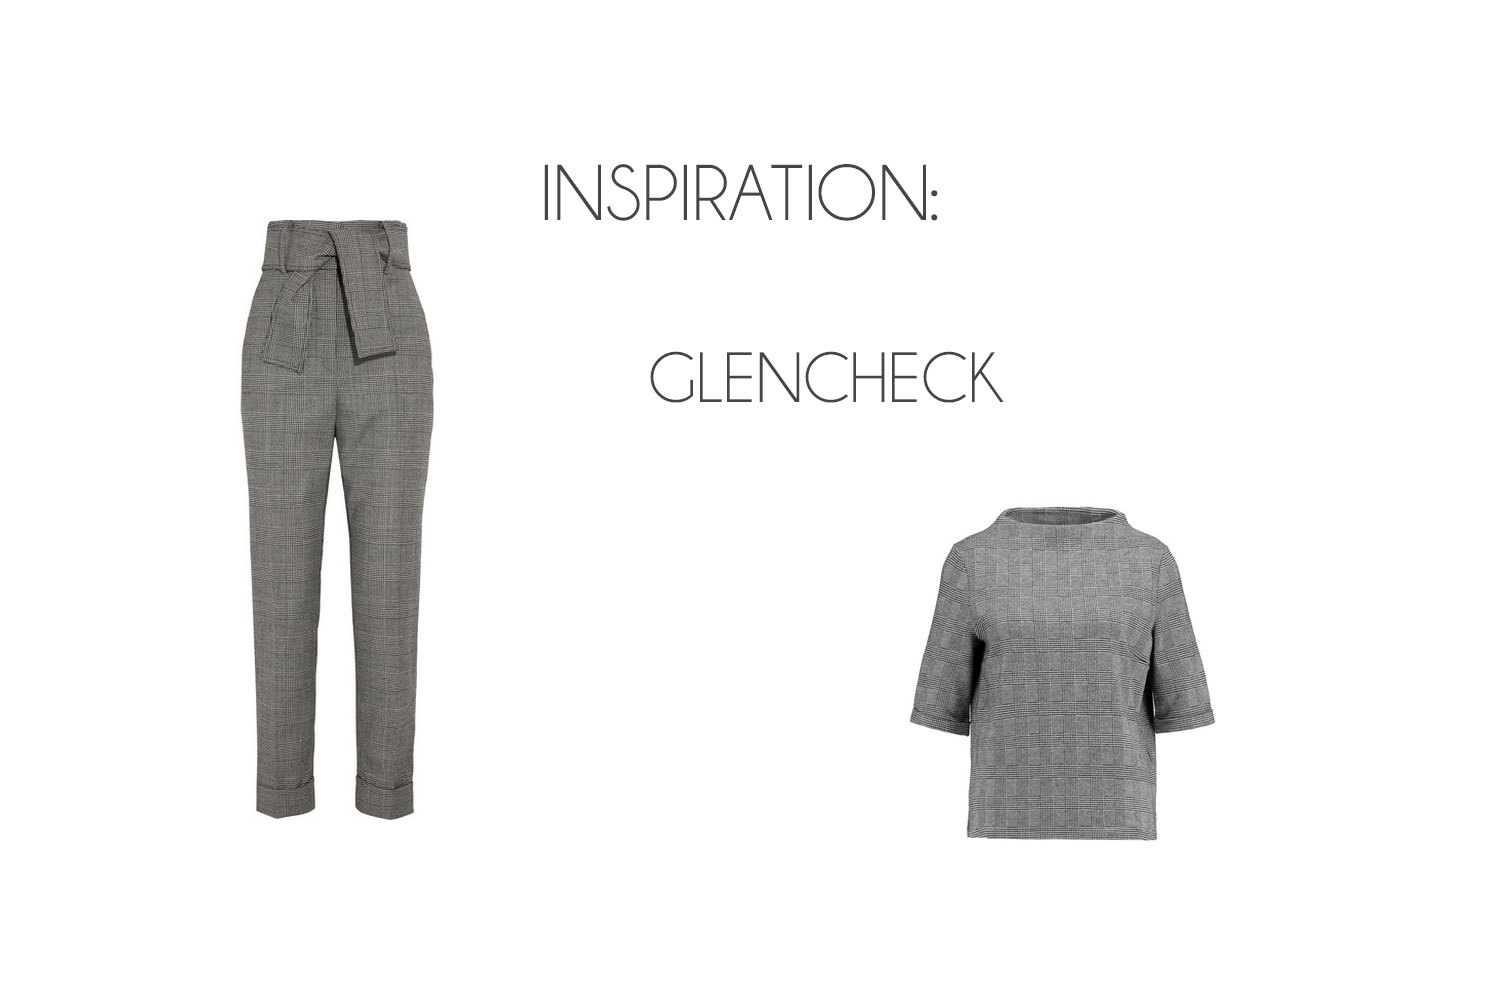 Inspiration: The Glencheck Trend